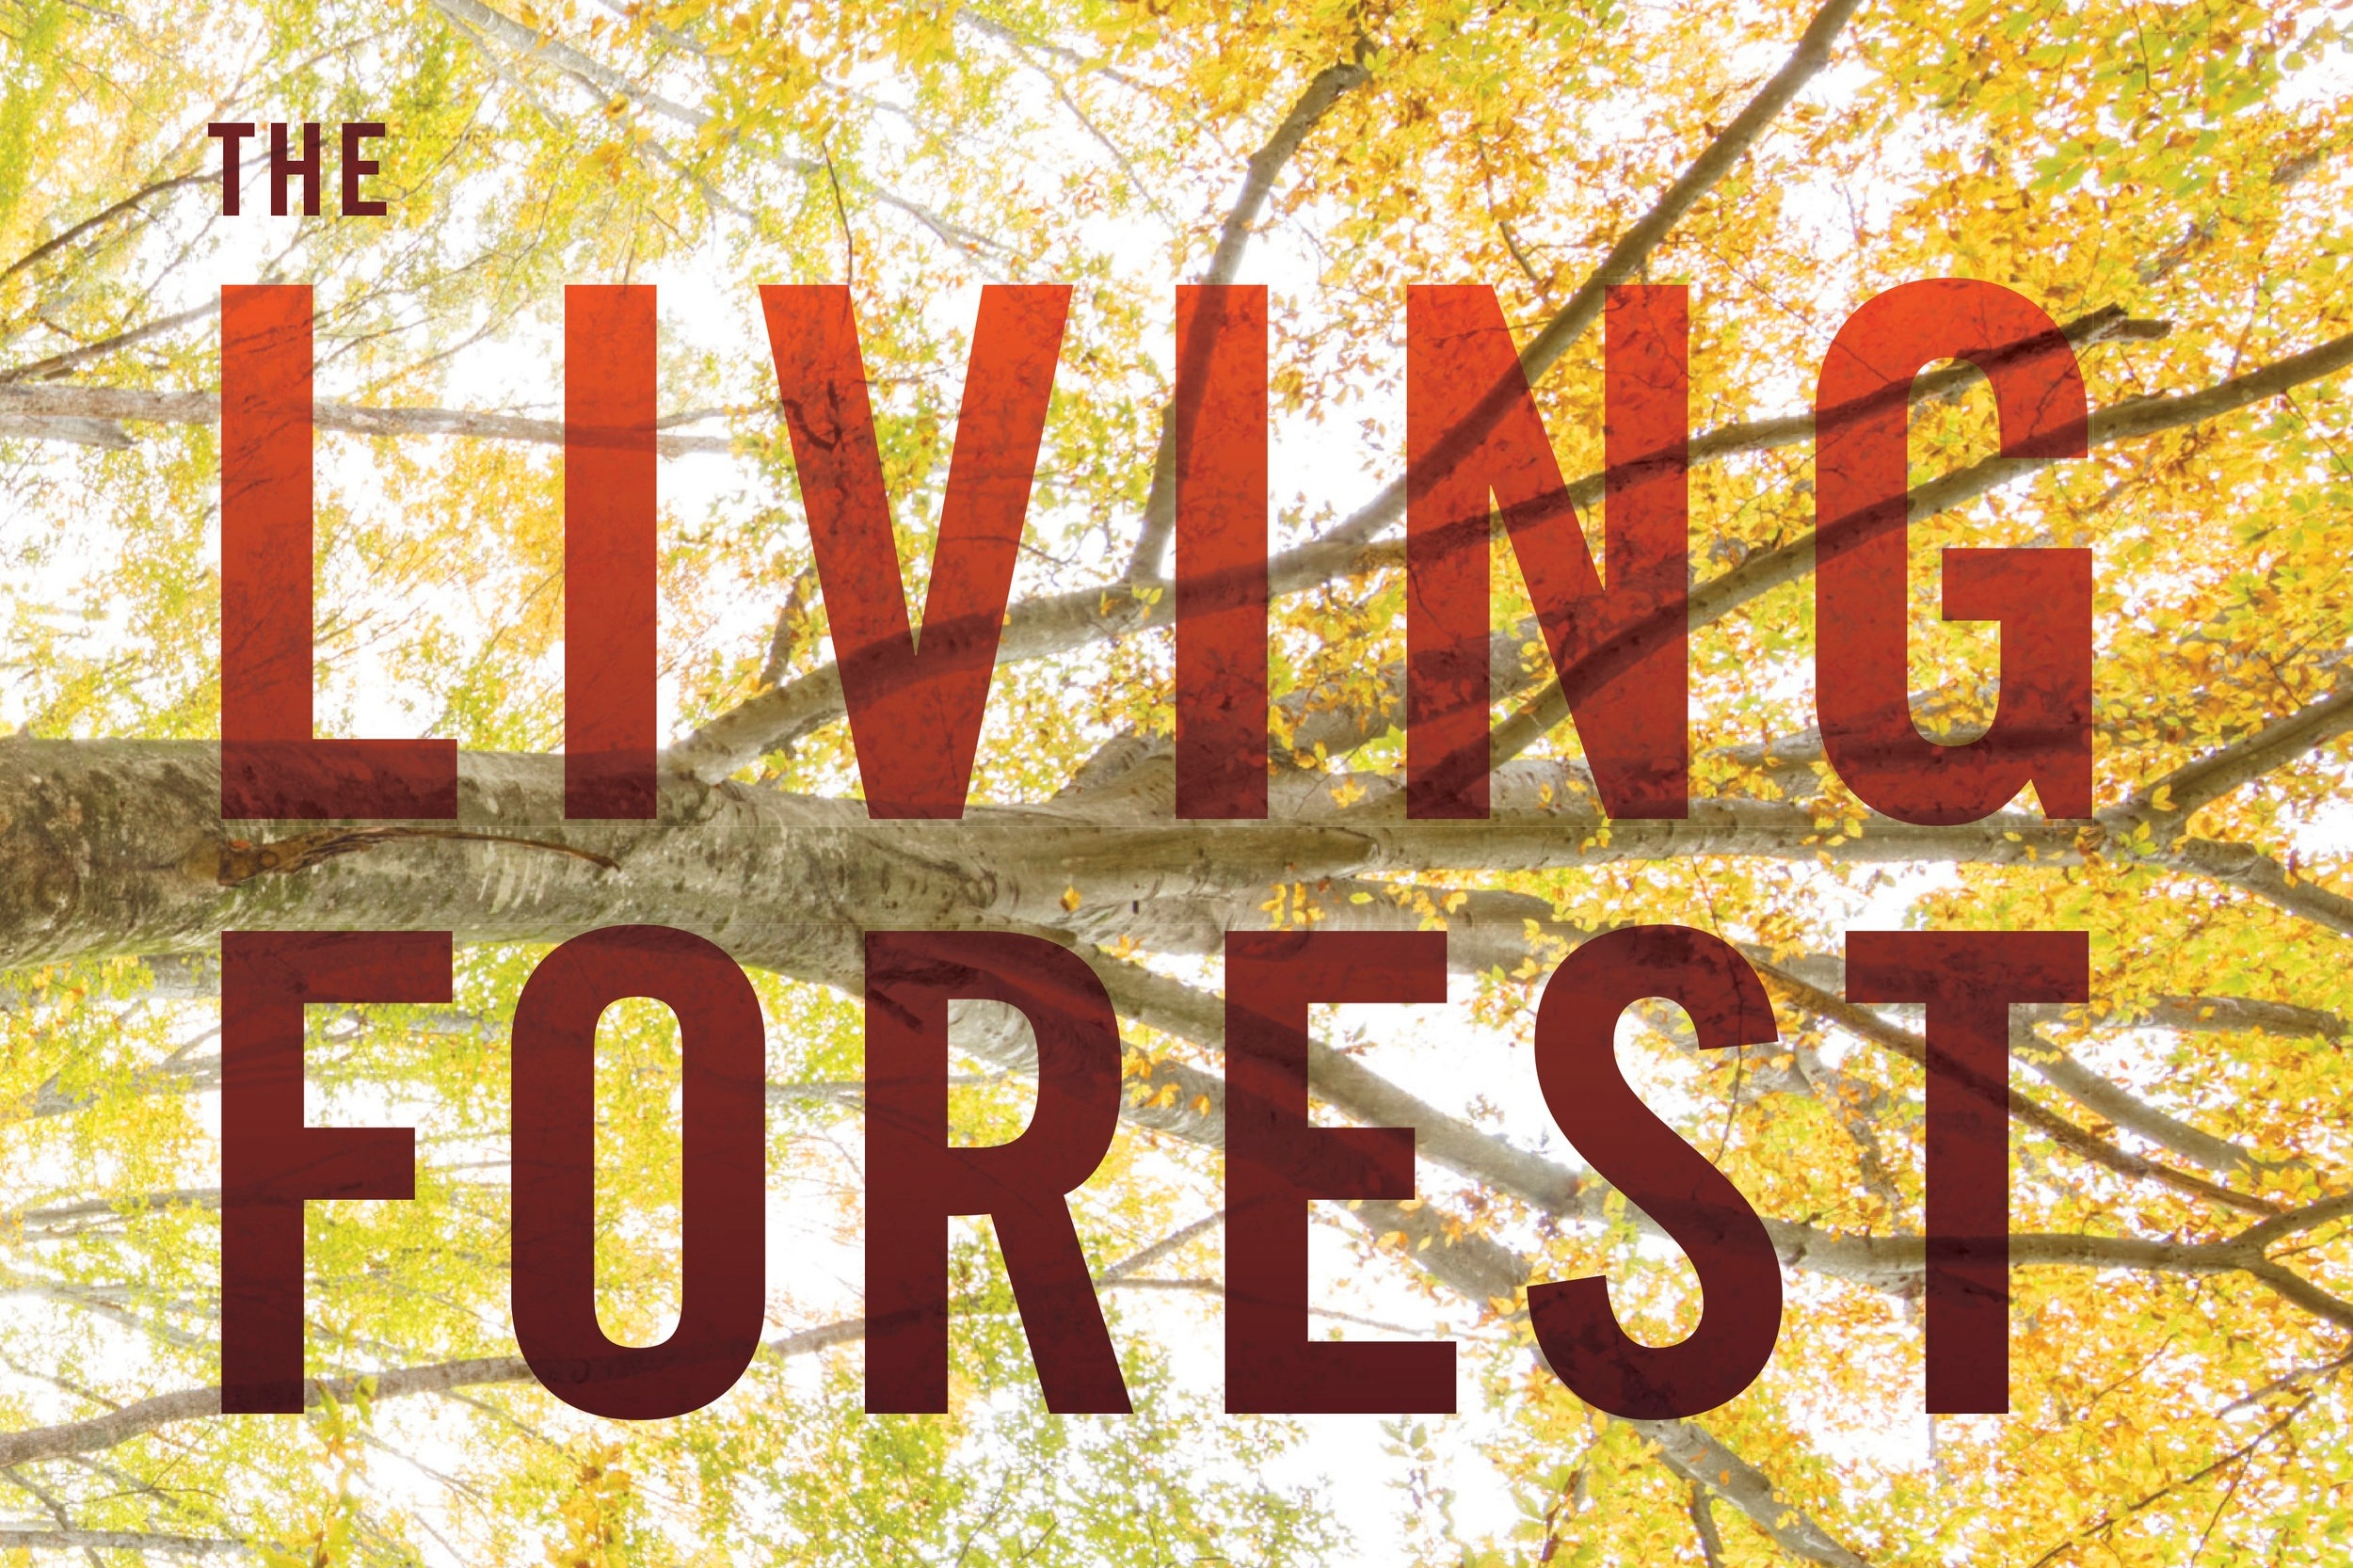 The living forest - The Living Forest is a visual journey that immerses you deep in the woods. The wide-ranging photography by Robert Llewellyn celebrates the small and the large, the living and the dead, and the seen and the unseen. In an ideal blend of art and scholarship, the 300 awe-inspiring photographs are supported by lyrical essays by Joan Maloof detailing the science behind the wonder.